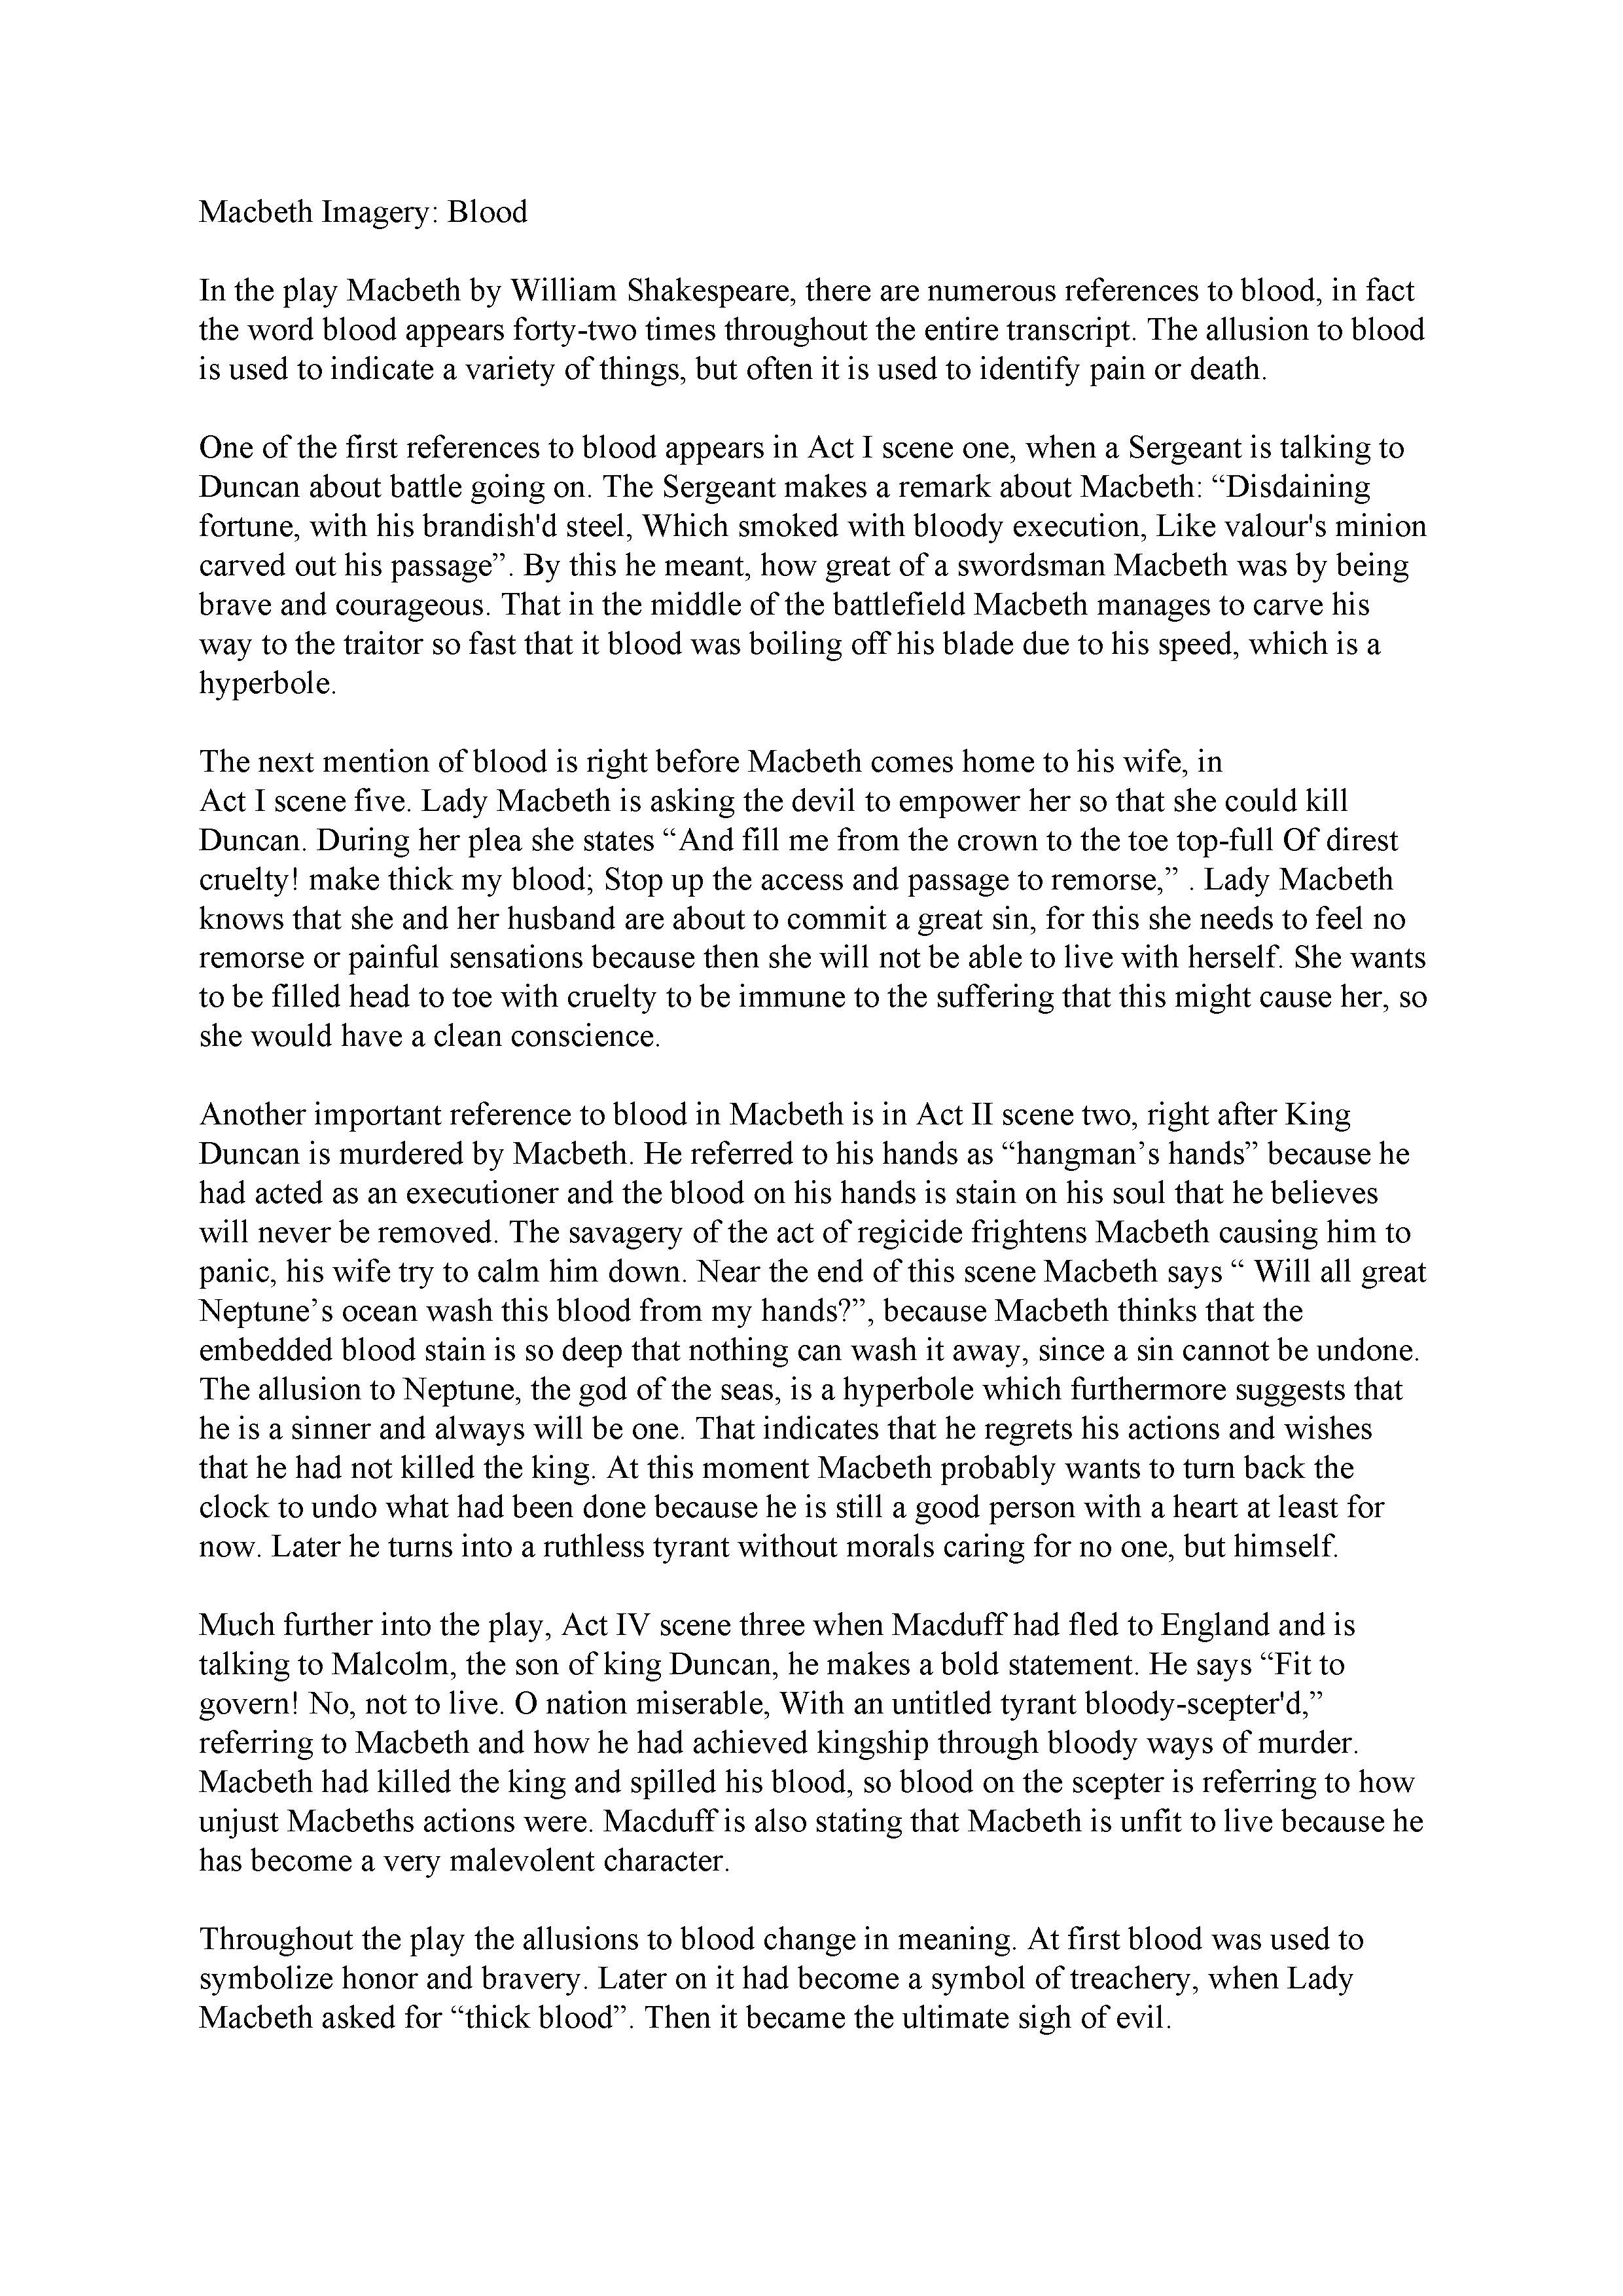 002 Macbeth Essay Sample Example Unusual Essays Narrative In Apa Format Free For Middle School Students College Ucla Full